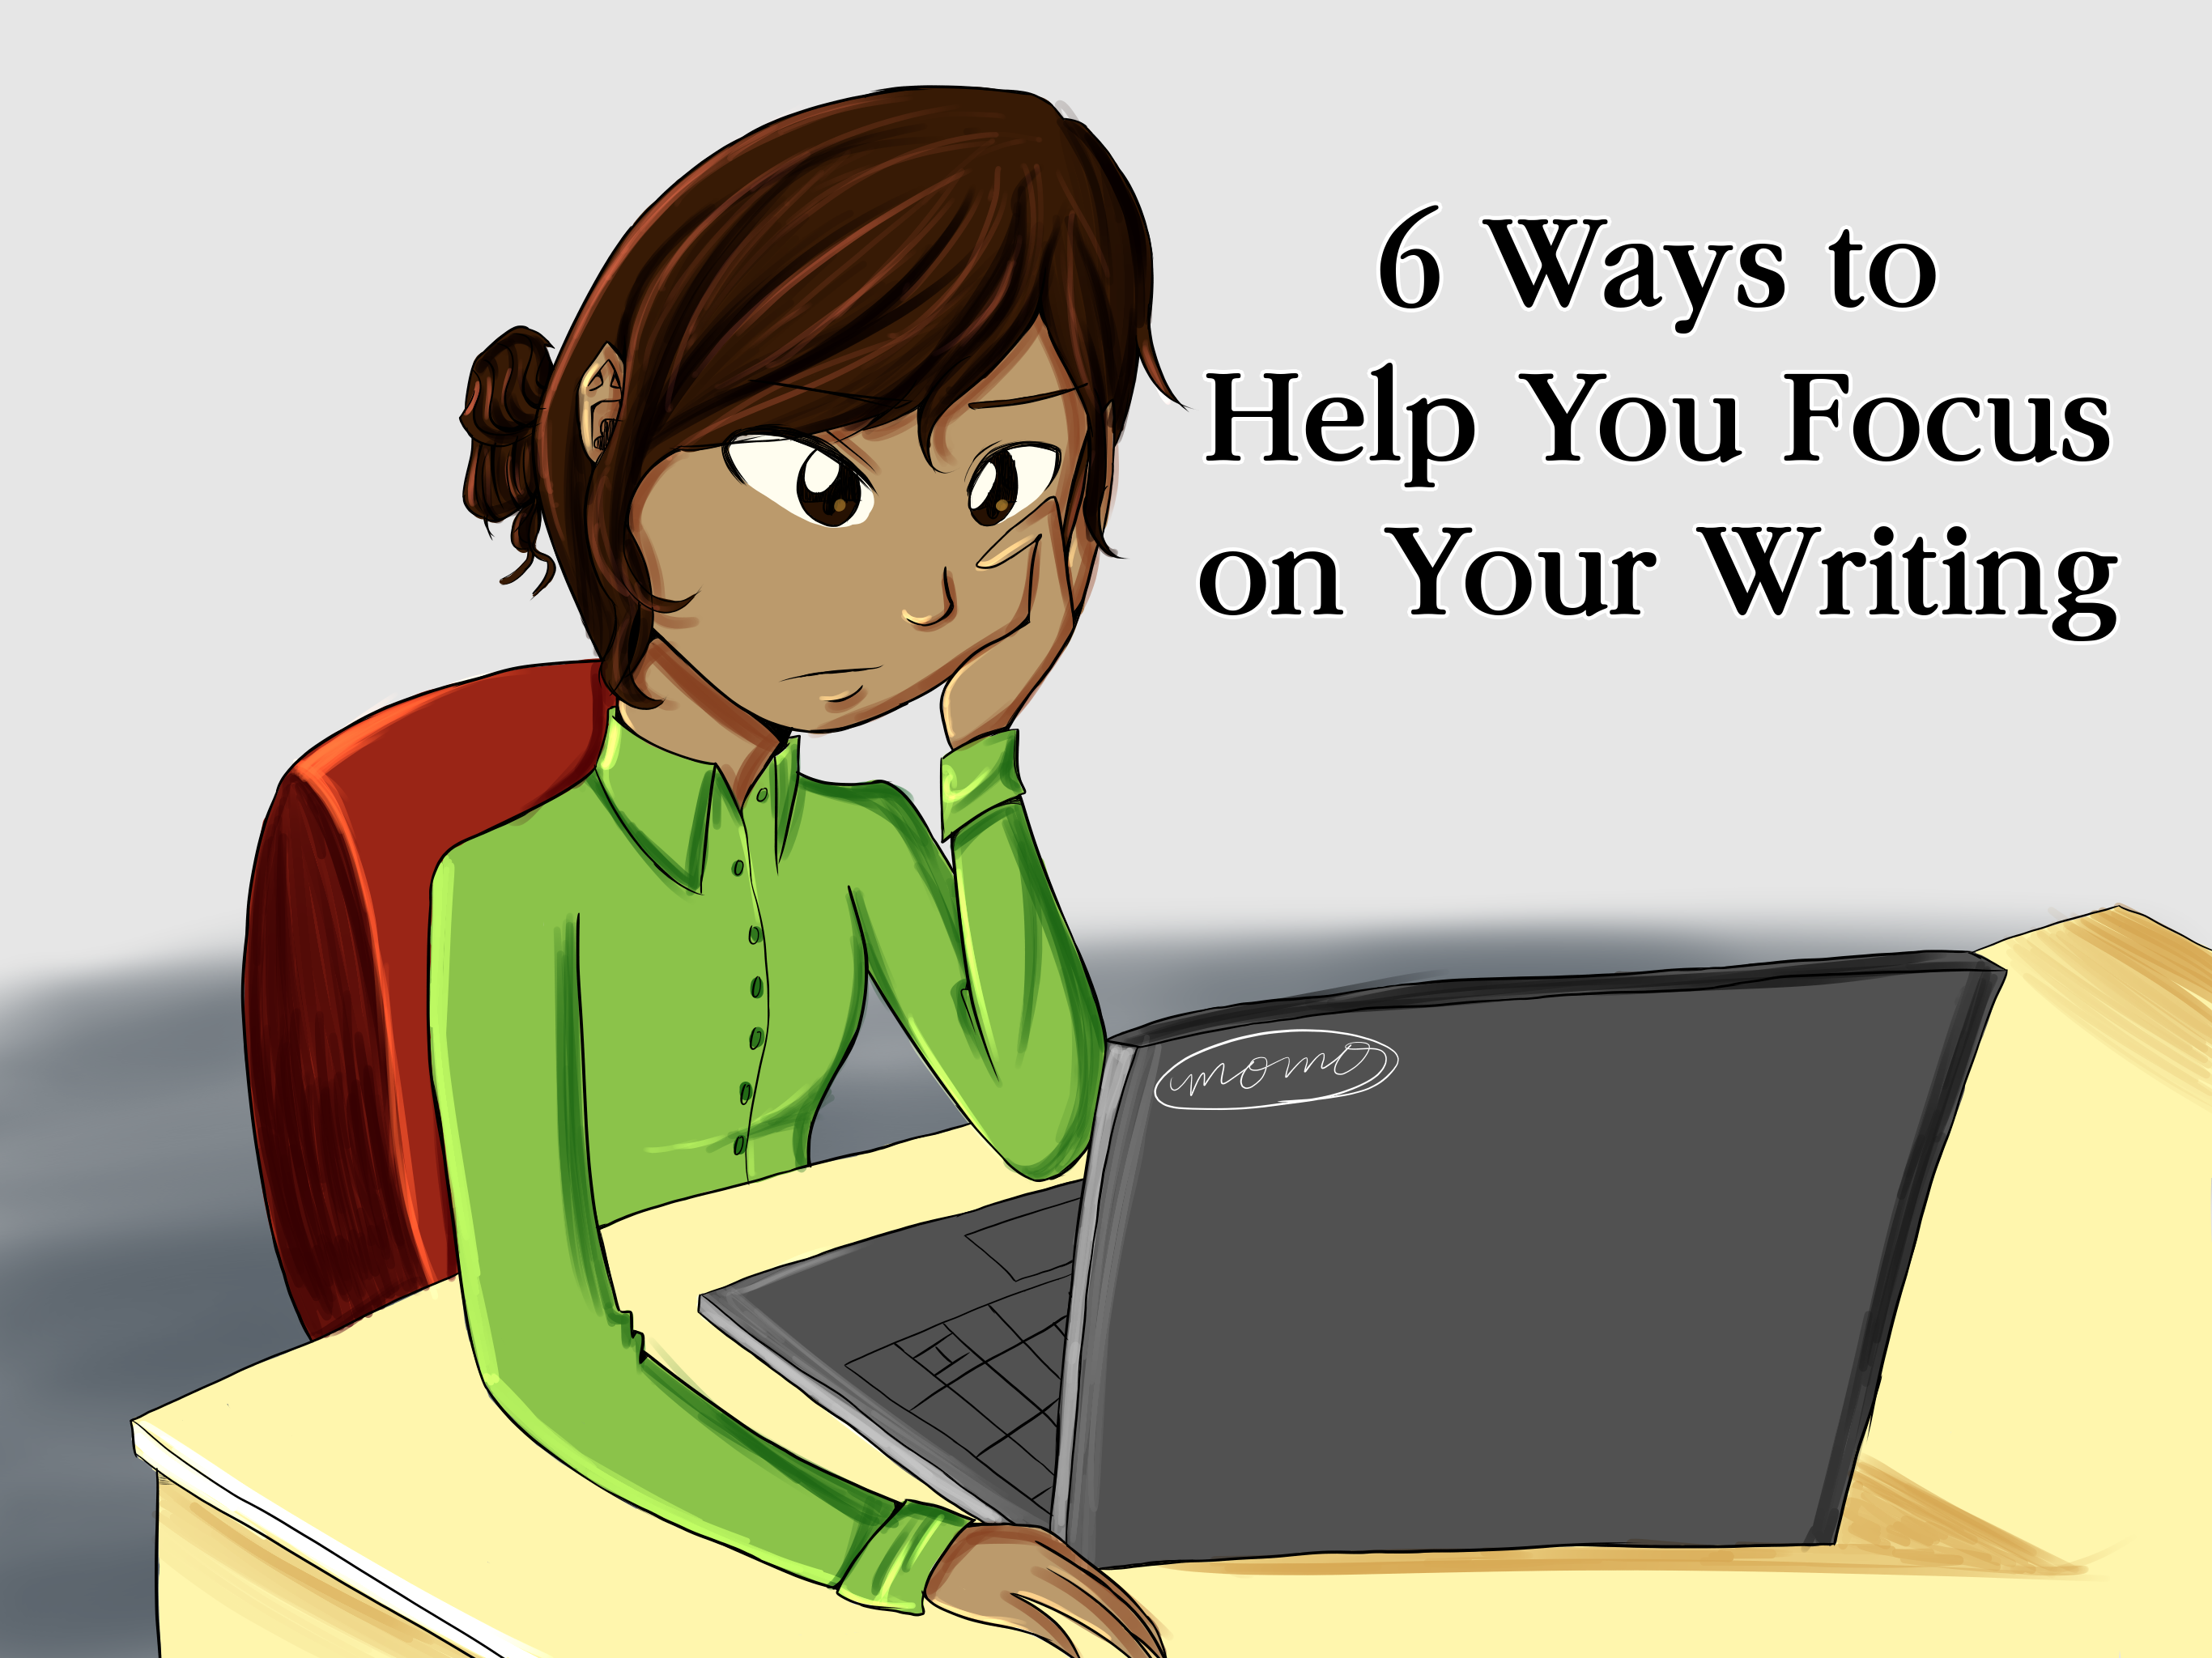 6 Ways to Help You Focus on Your Writing